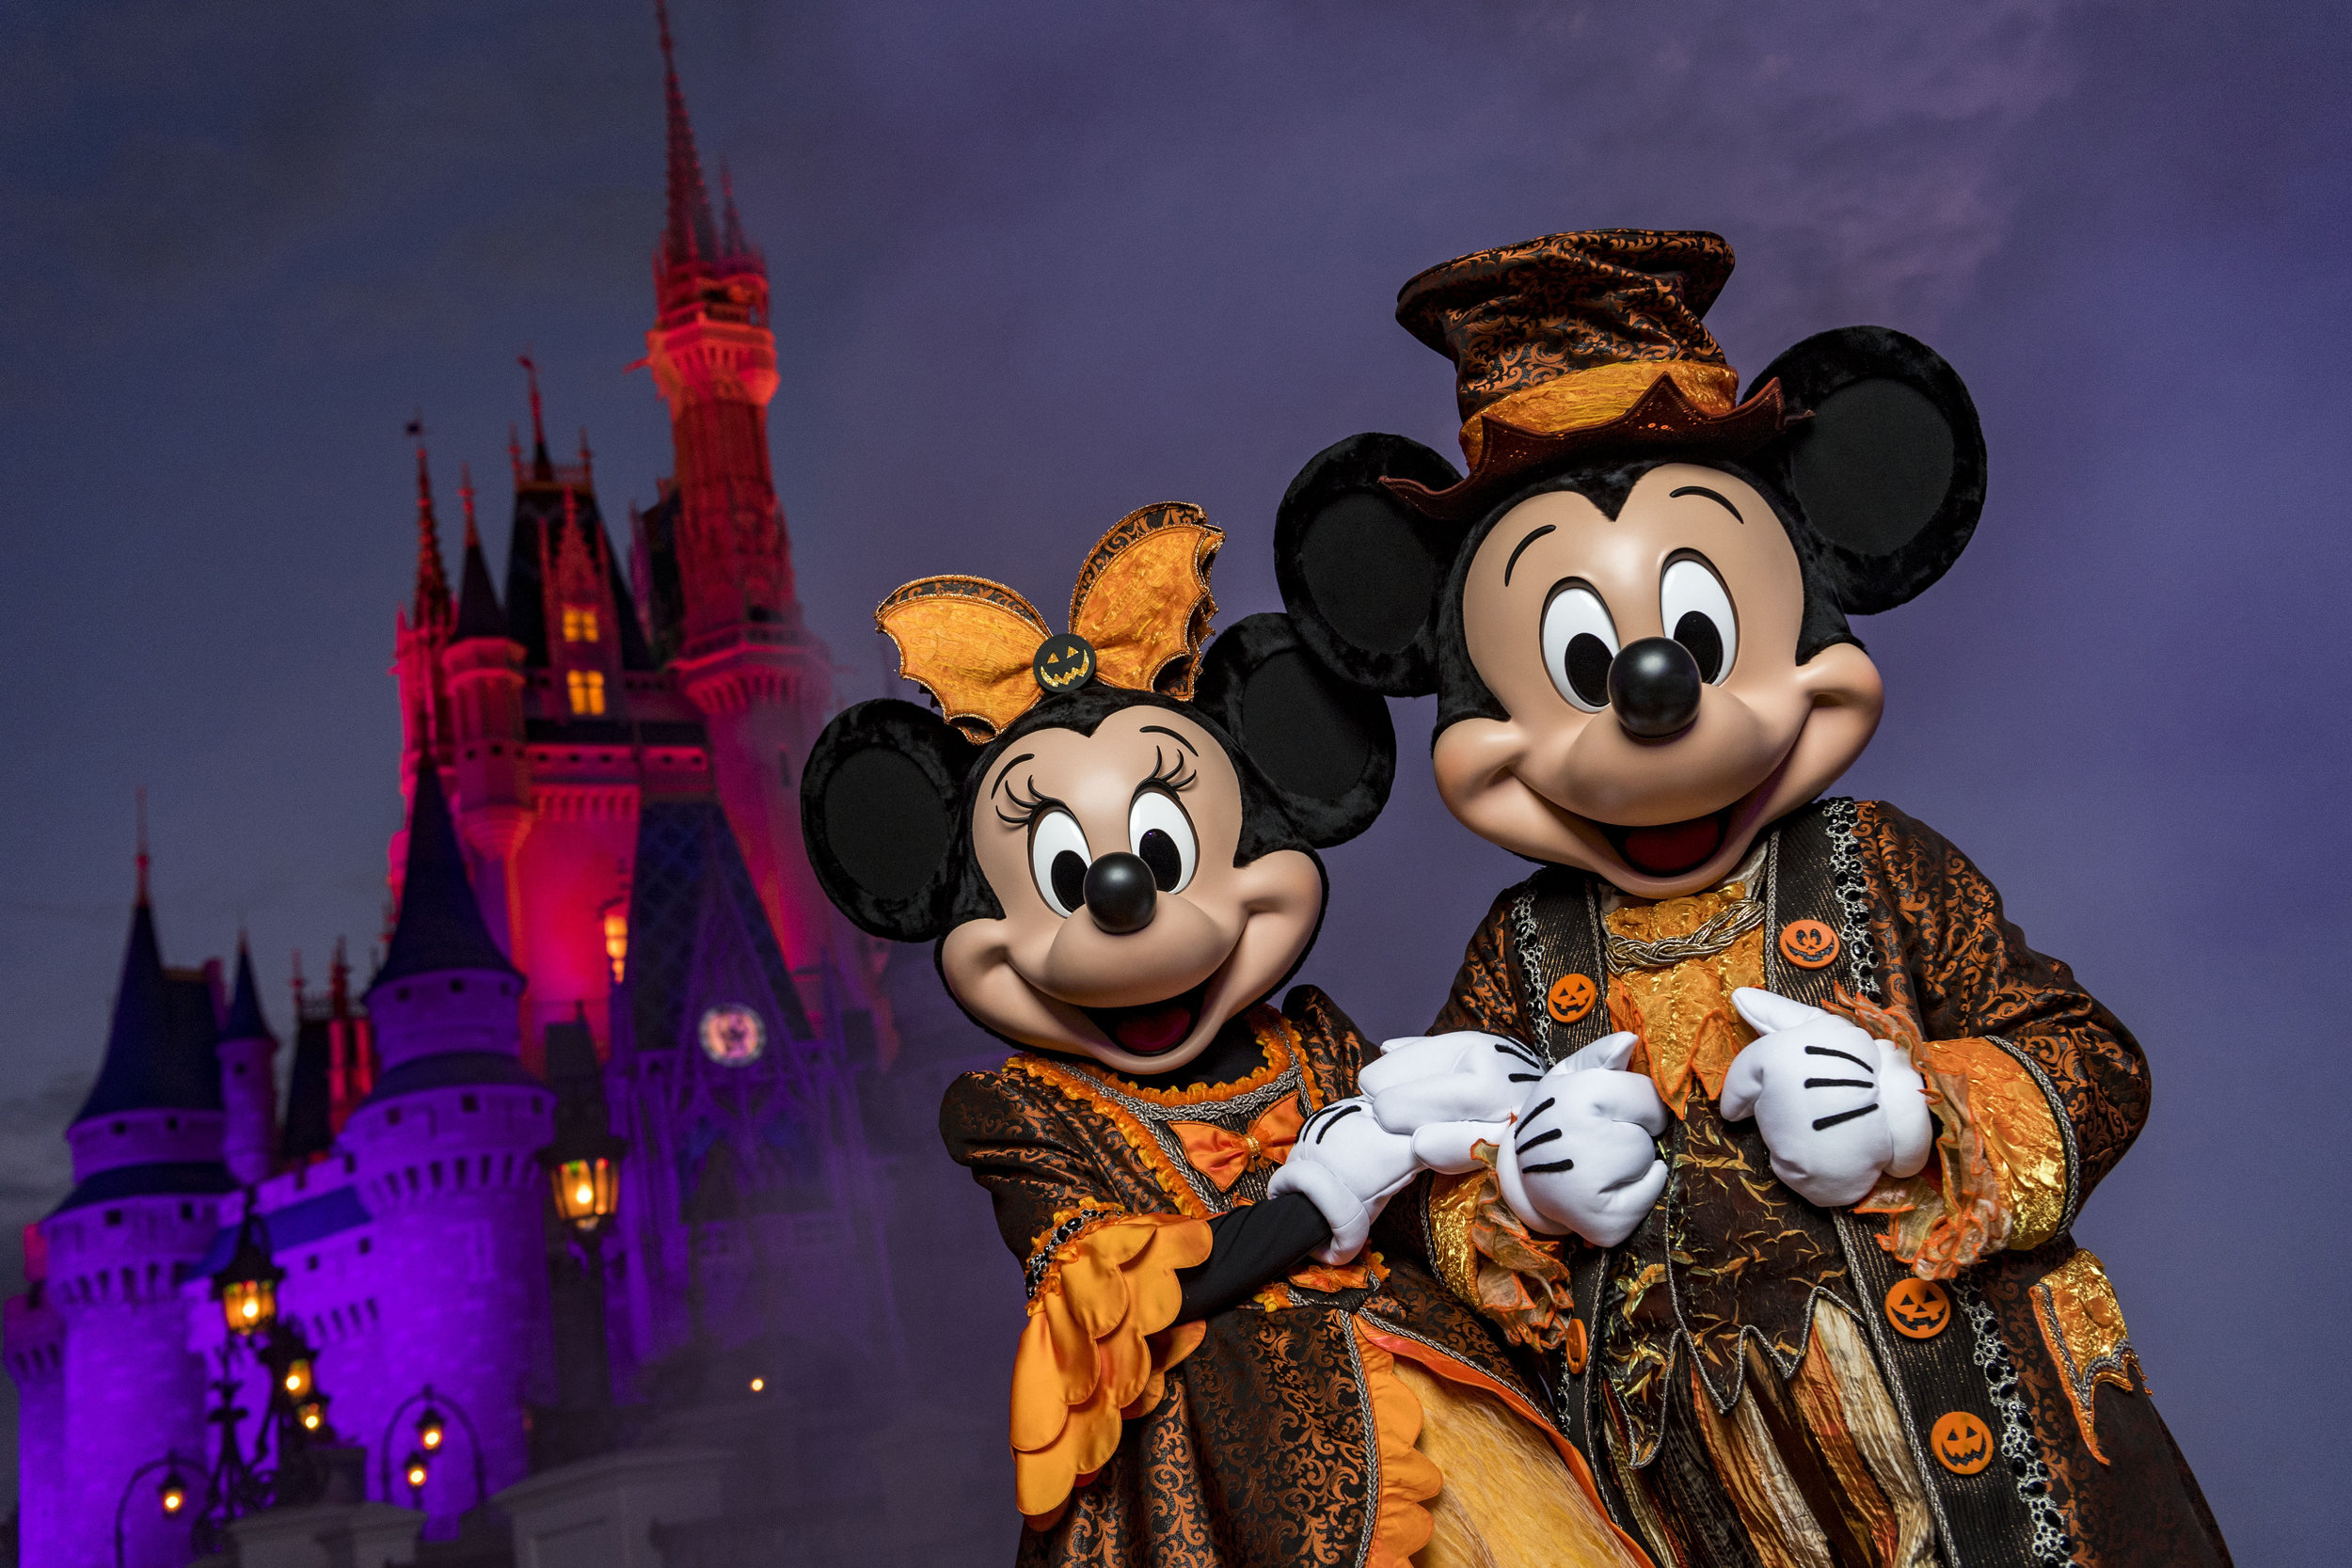 Eerie lighting, fall d�cor and Mickey Mouse-shaped Jack-O-Lanterns set the stage at Magic Kingdom for Mickey�s Not-So-Scary Halloween Party. The family-friendly after-hours event offers trick-or-treating, meet and greets with favorite characters in costume, plus the must-see �Mickey�s Boo-to-You Halloween Parade� and �Happy HalloWishes� fireworks display. Mickey�s Not-So-Scary Halloween Party is a special ticket event and takes place on select nights each fall at Walt Disney World Resort in Lake Buena Vista, Fla.  (Matt Stroshane, photographer)